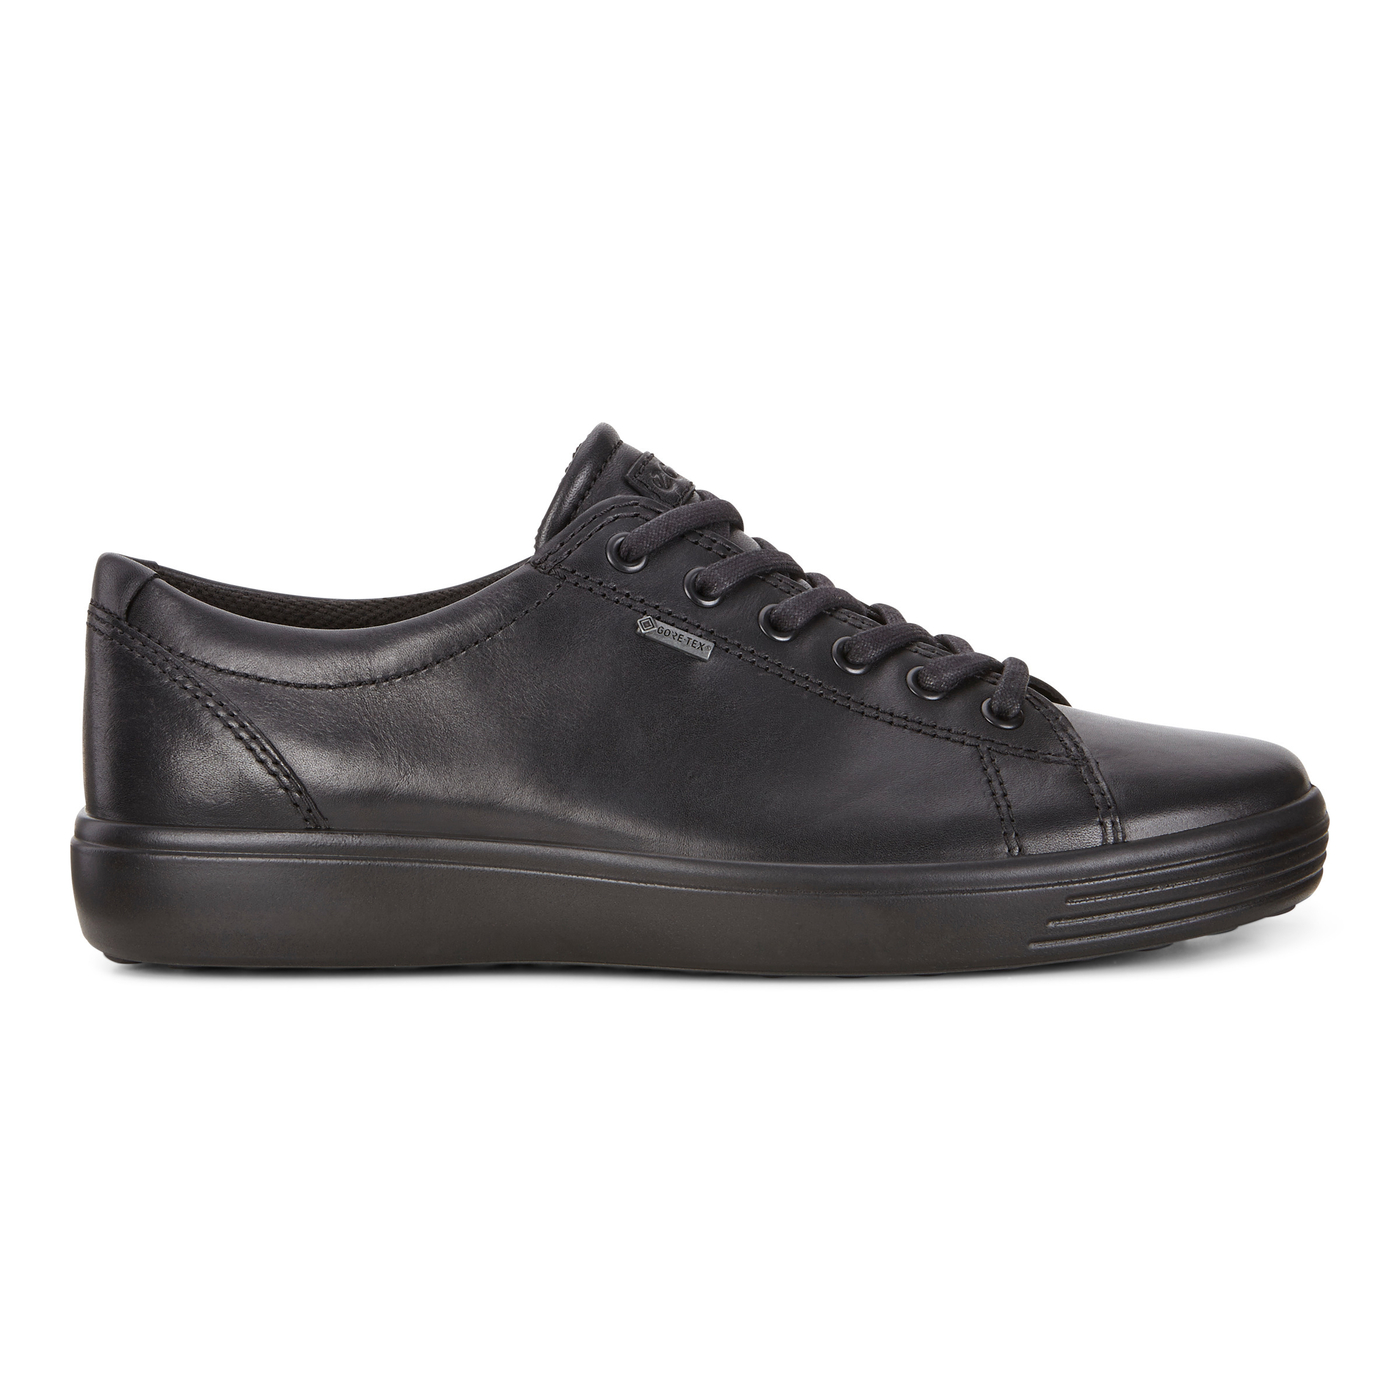 ECCO Soft 7 M Low GTX